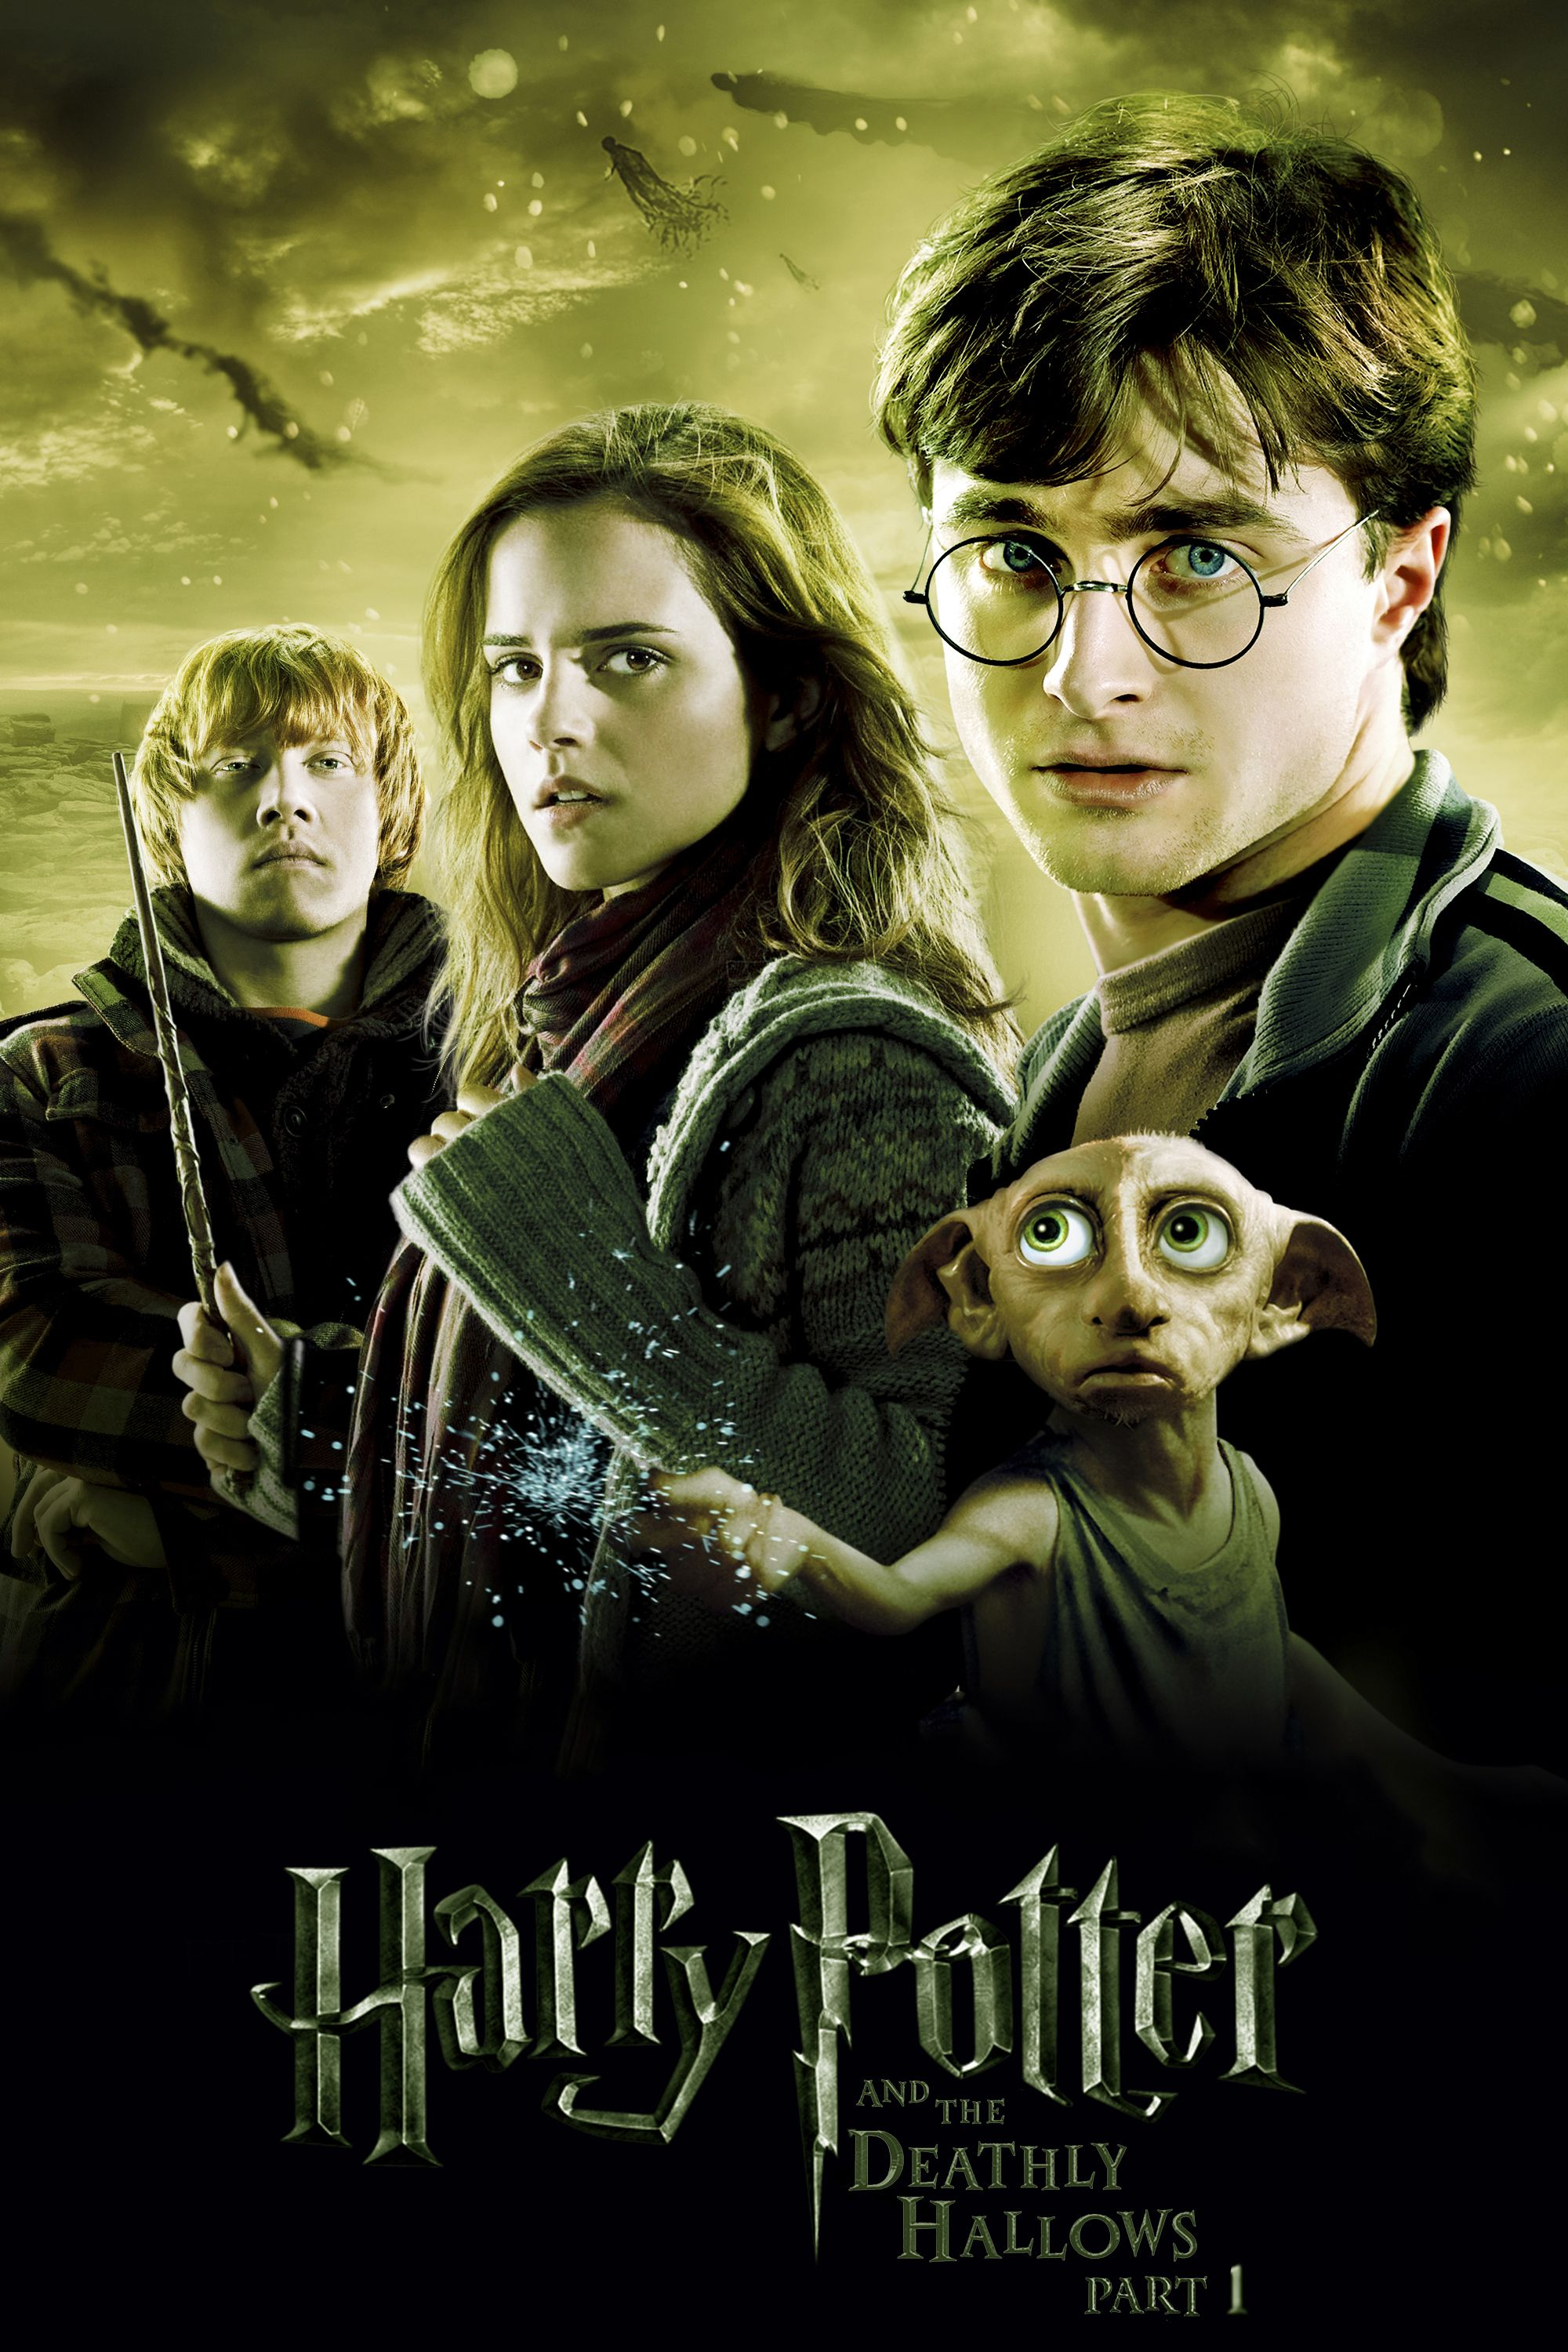 Pin By Harriet Lamb On Harry Potter Harry Potter Artwork Harry Potter Images Harry Potter